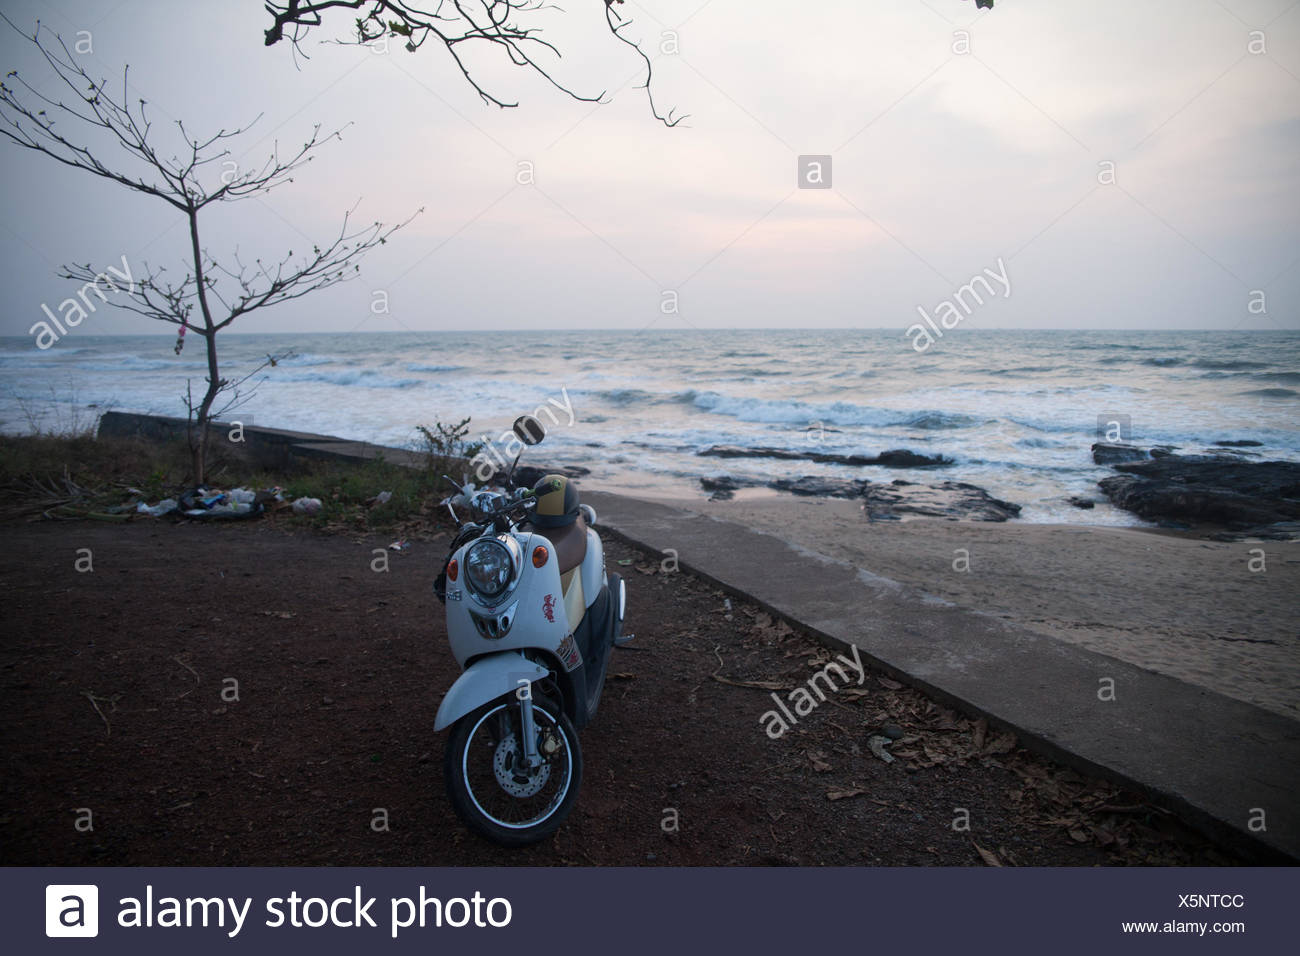 Motor Scooter On Beach - Stock Image